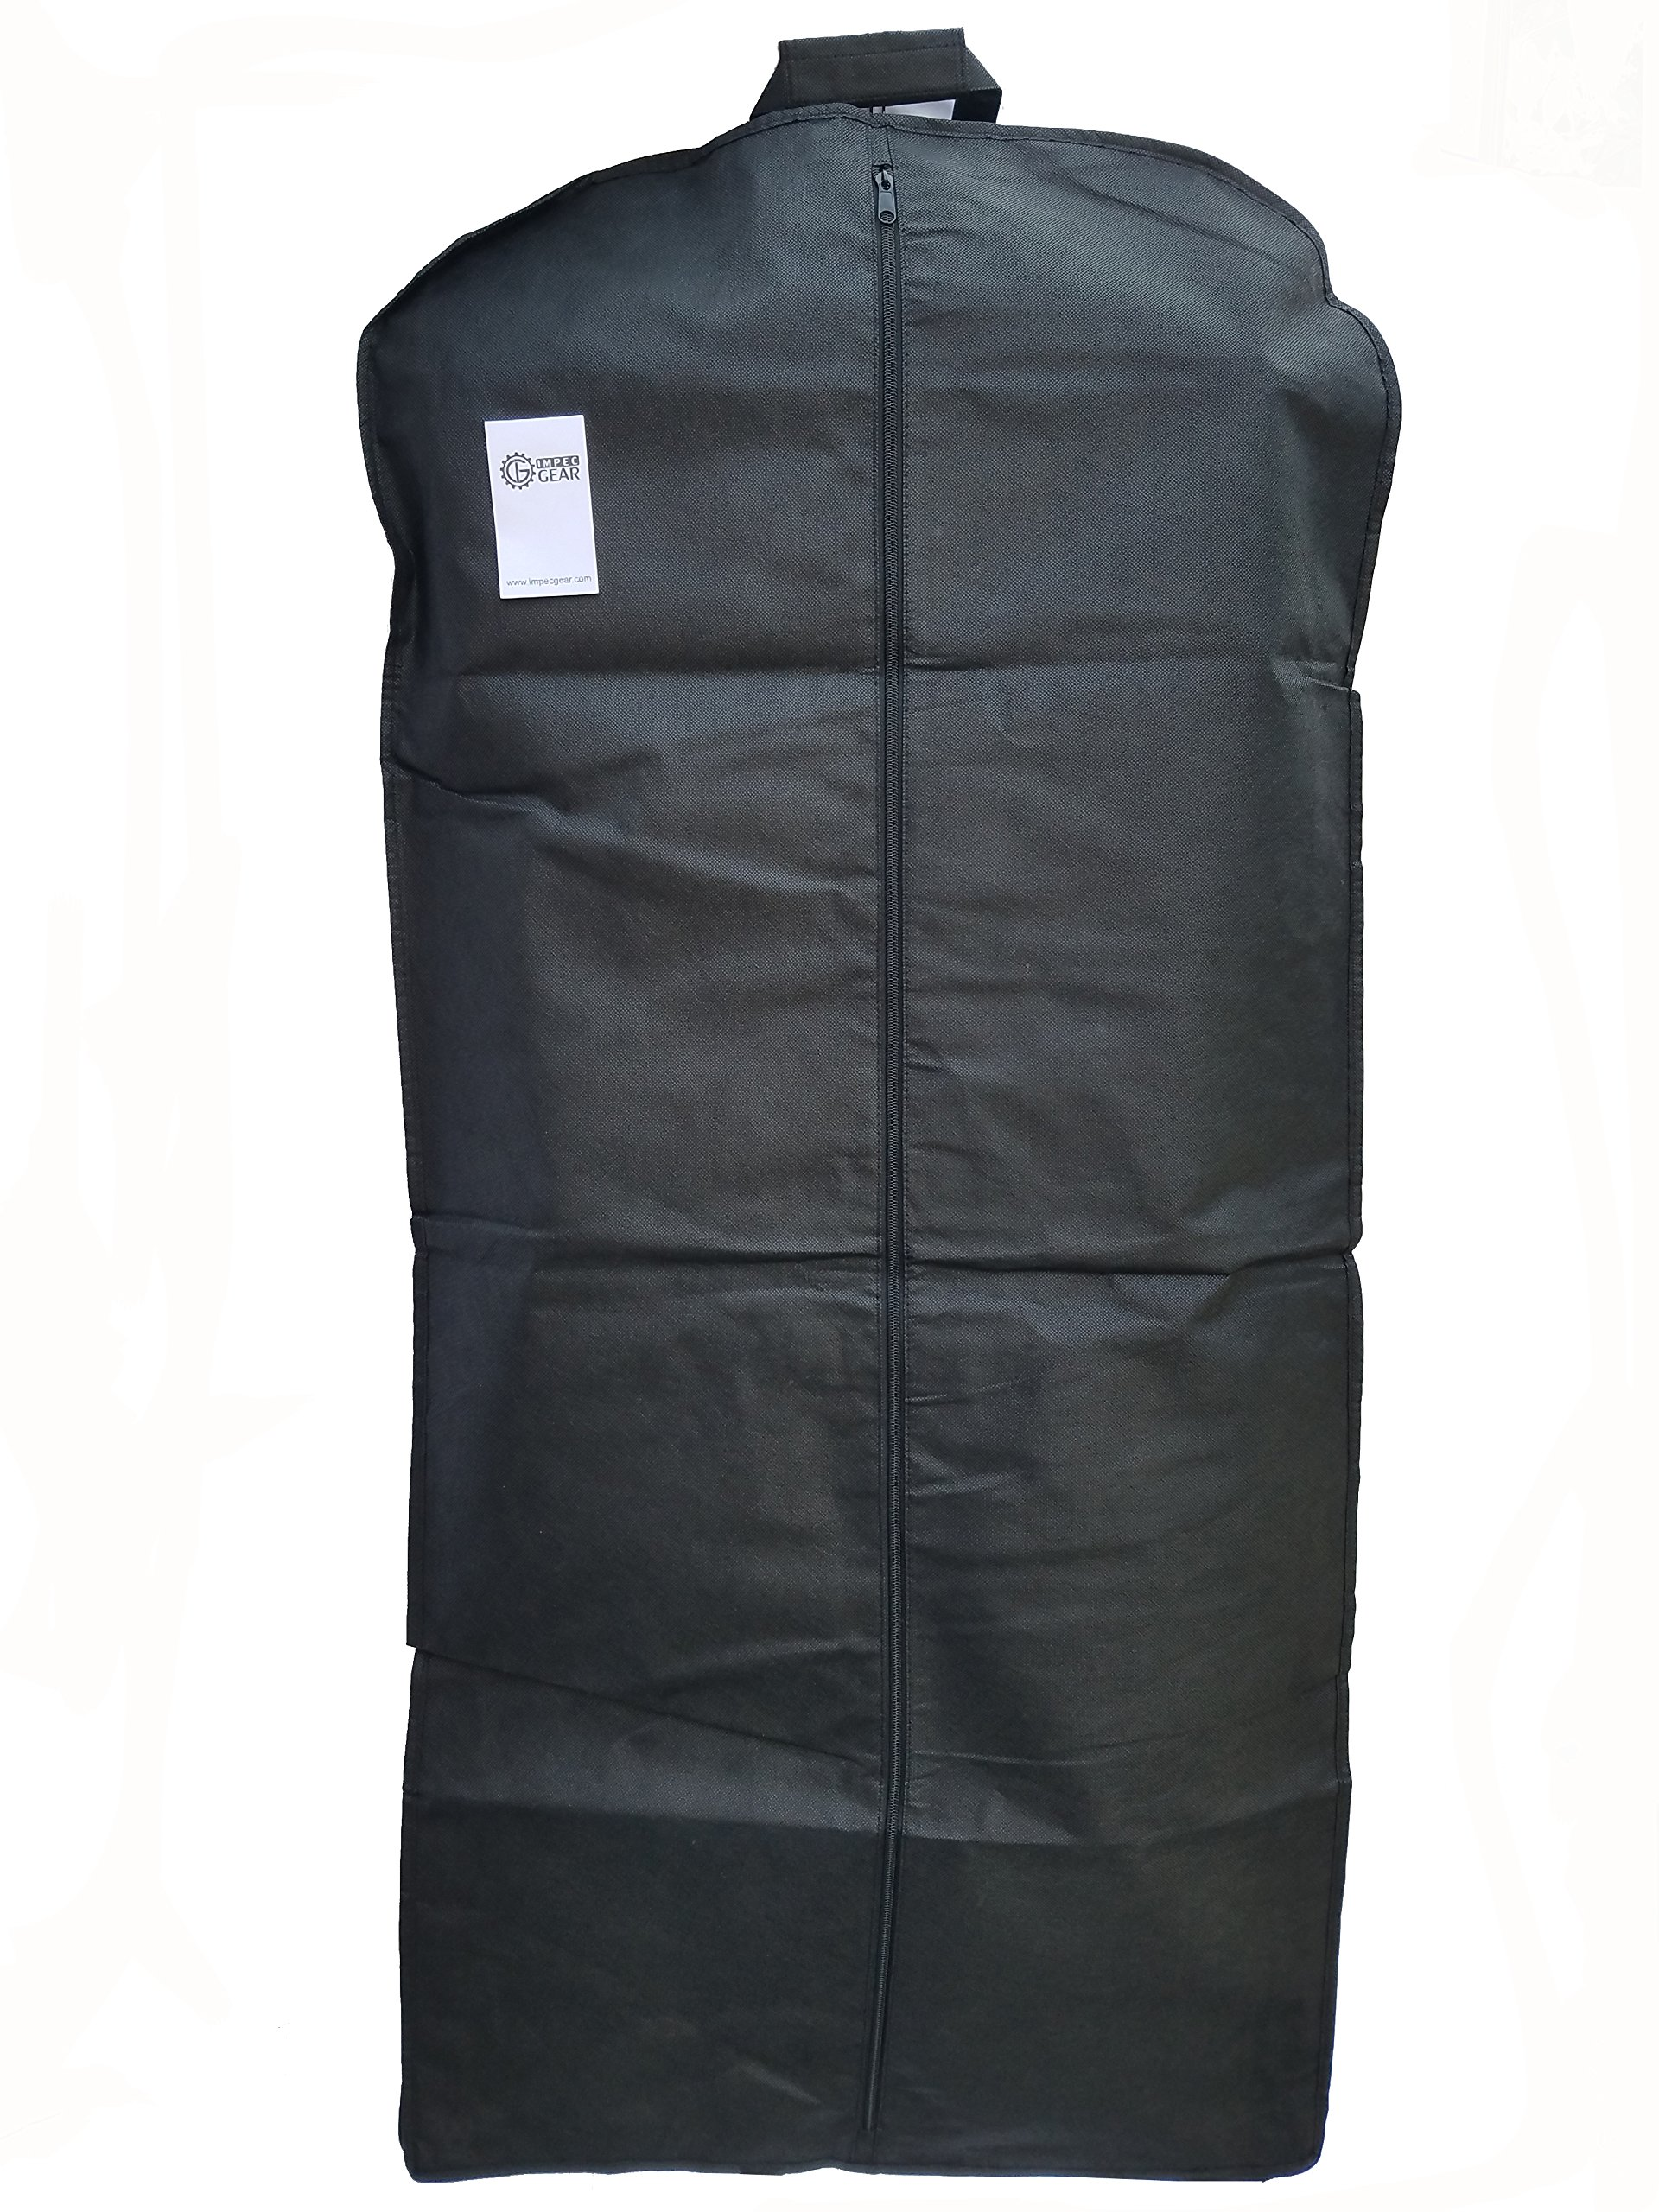 NEW 48'' Breathable Gusseted Travel Garment Bag Cover - For Suits Dress, Clothes, Tux, Jersey Storage Travel (1 PACK) by ImpecGear (Image #2)